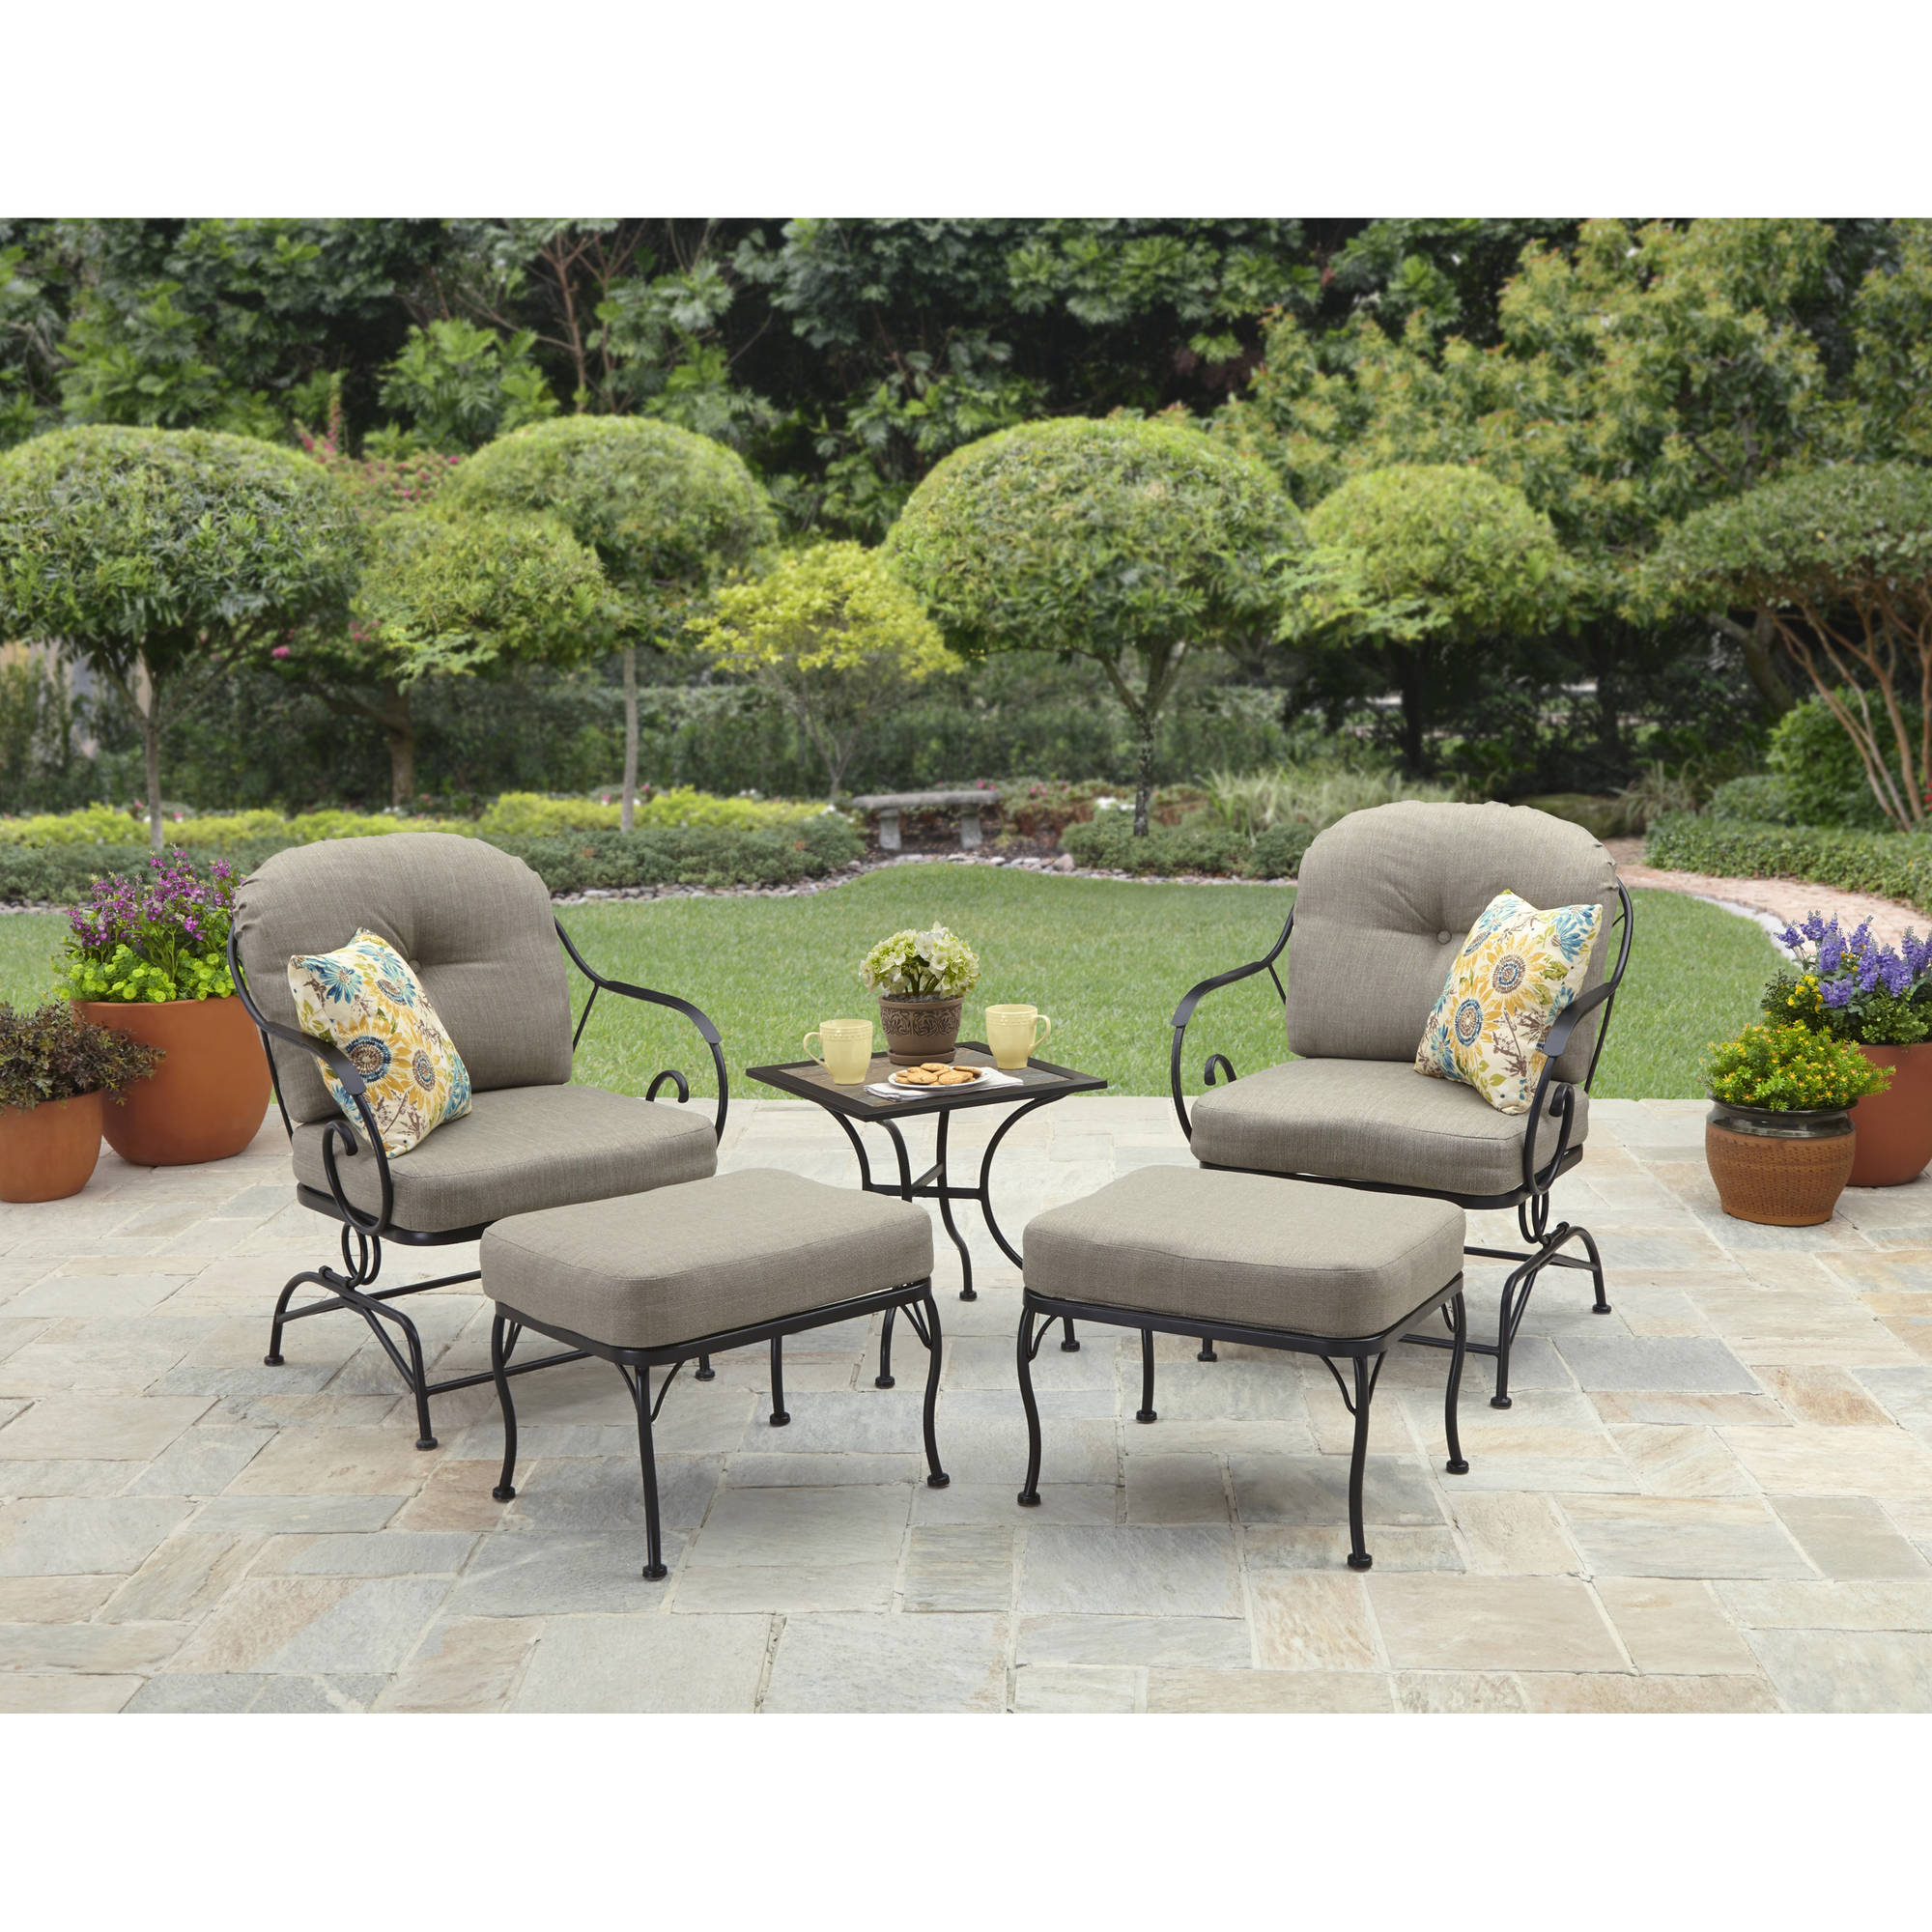 Better Homes and Gardens Myrtle Creek 5 Piece Outdoor Leisure Set